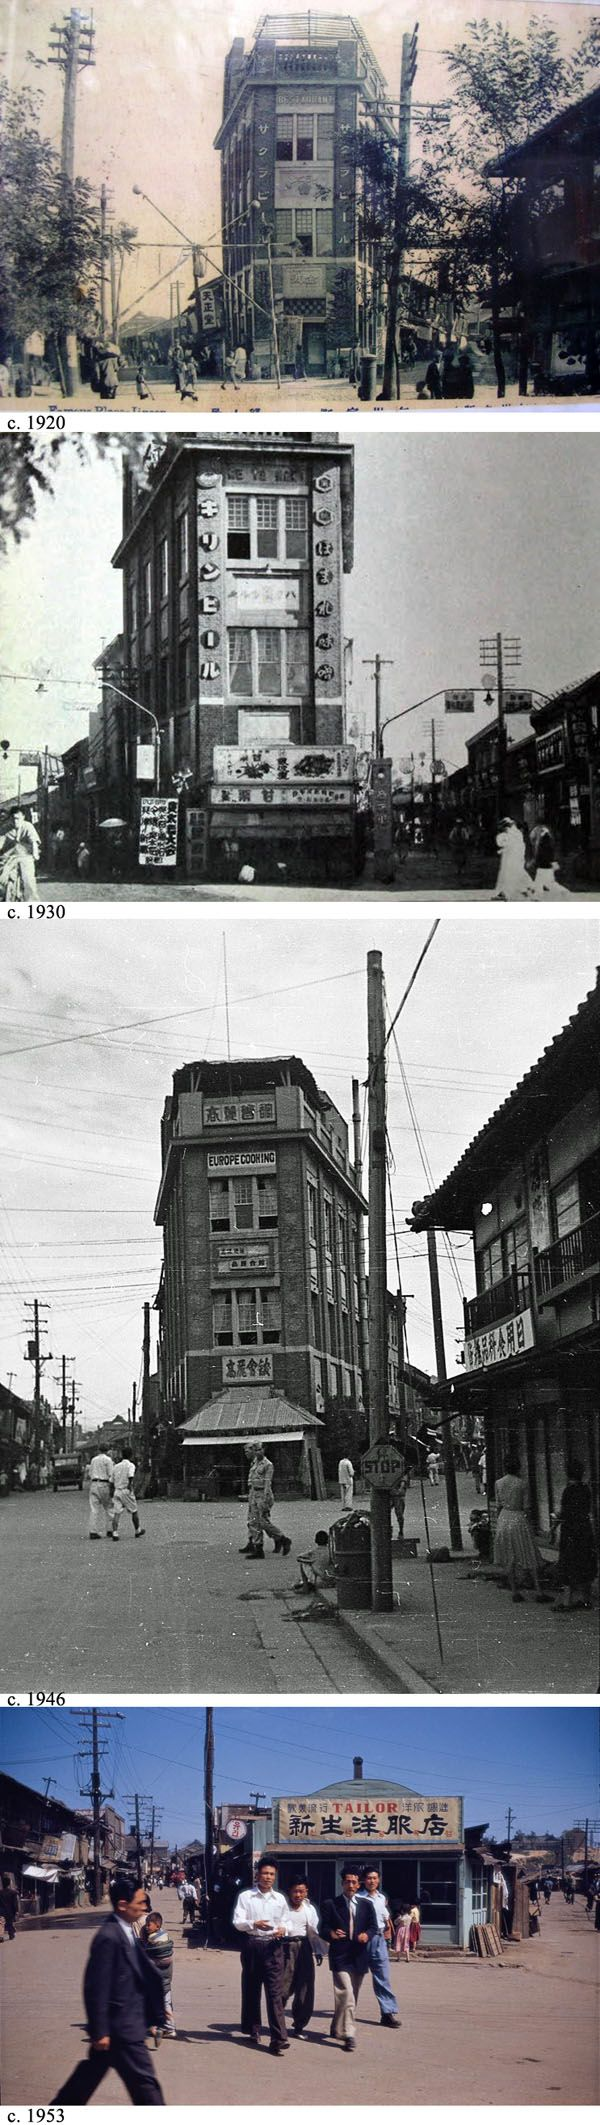 Same corner in Incheon 1920s through 1950s